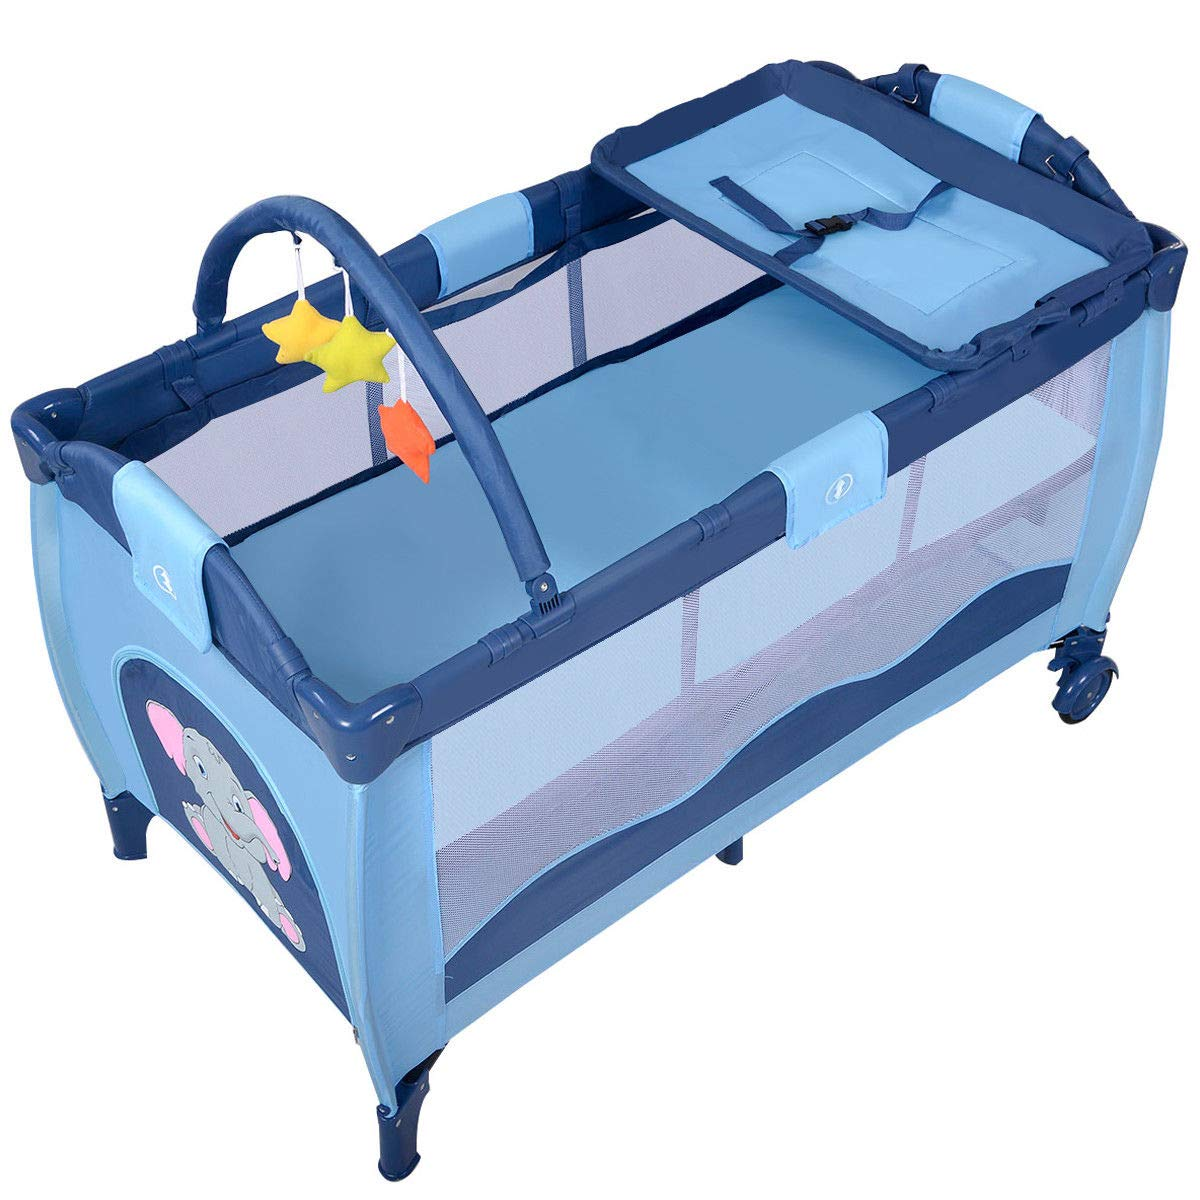 Toddler Baby Crib Playard Pack Playpen Bassinet Travel Infant Bed Portable Foldable by WealthyPlaza (Image #5)